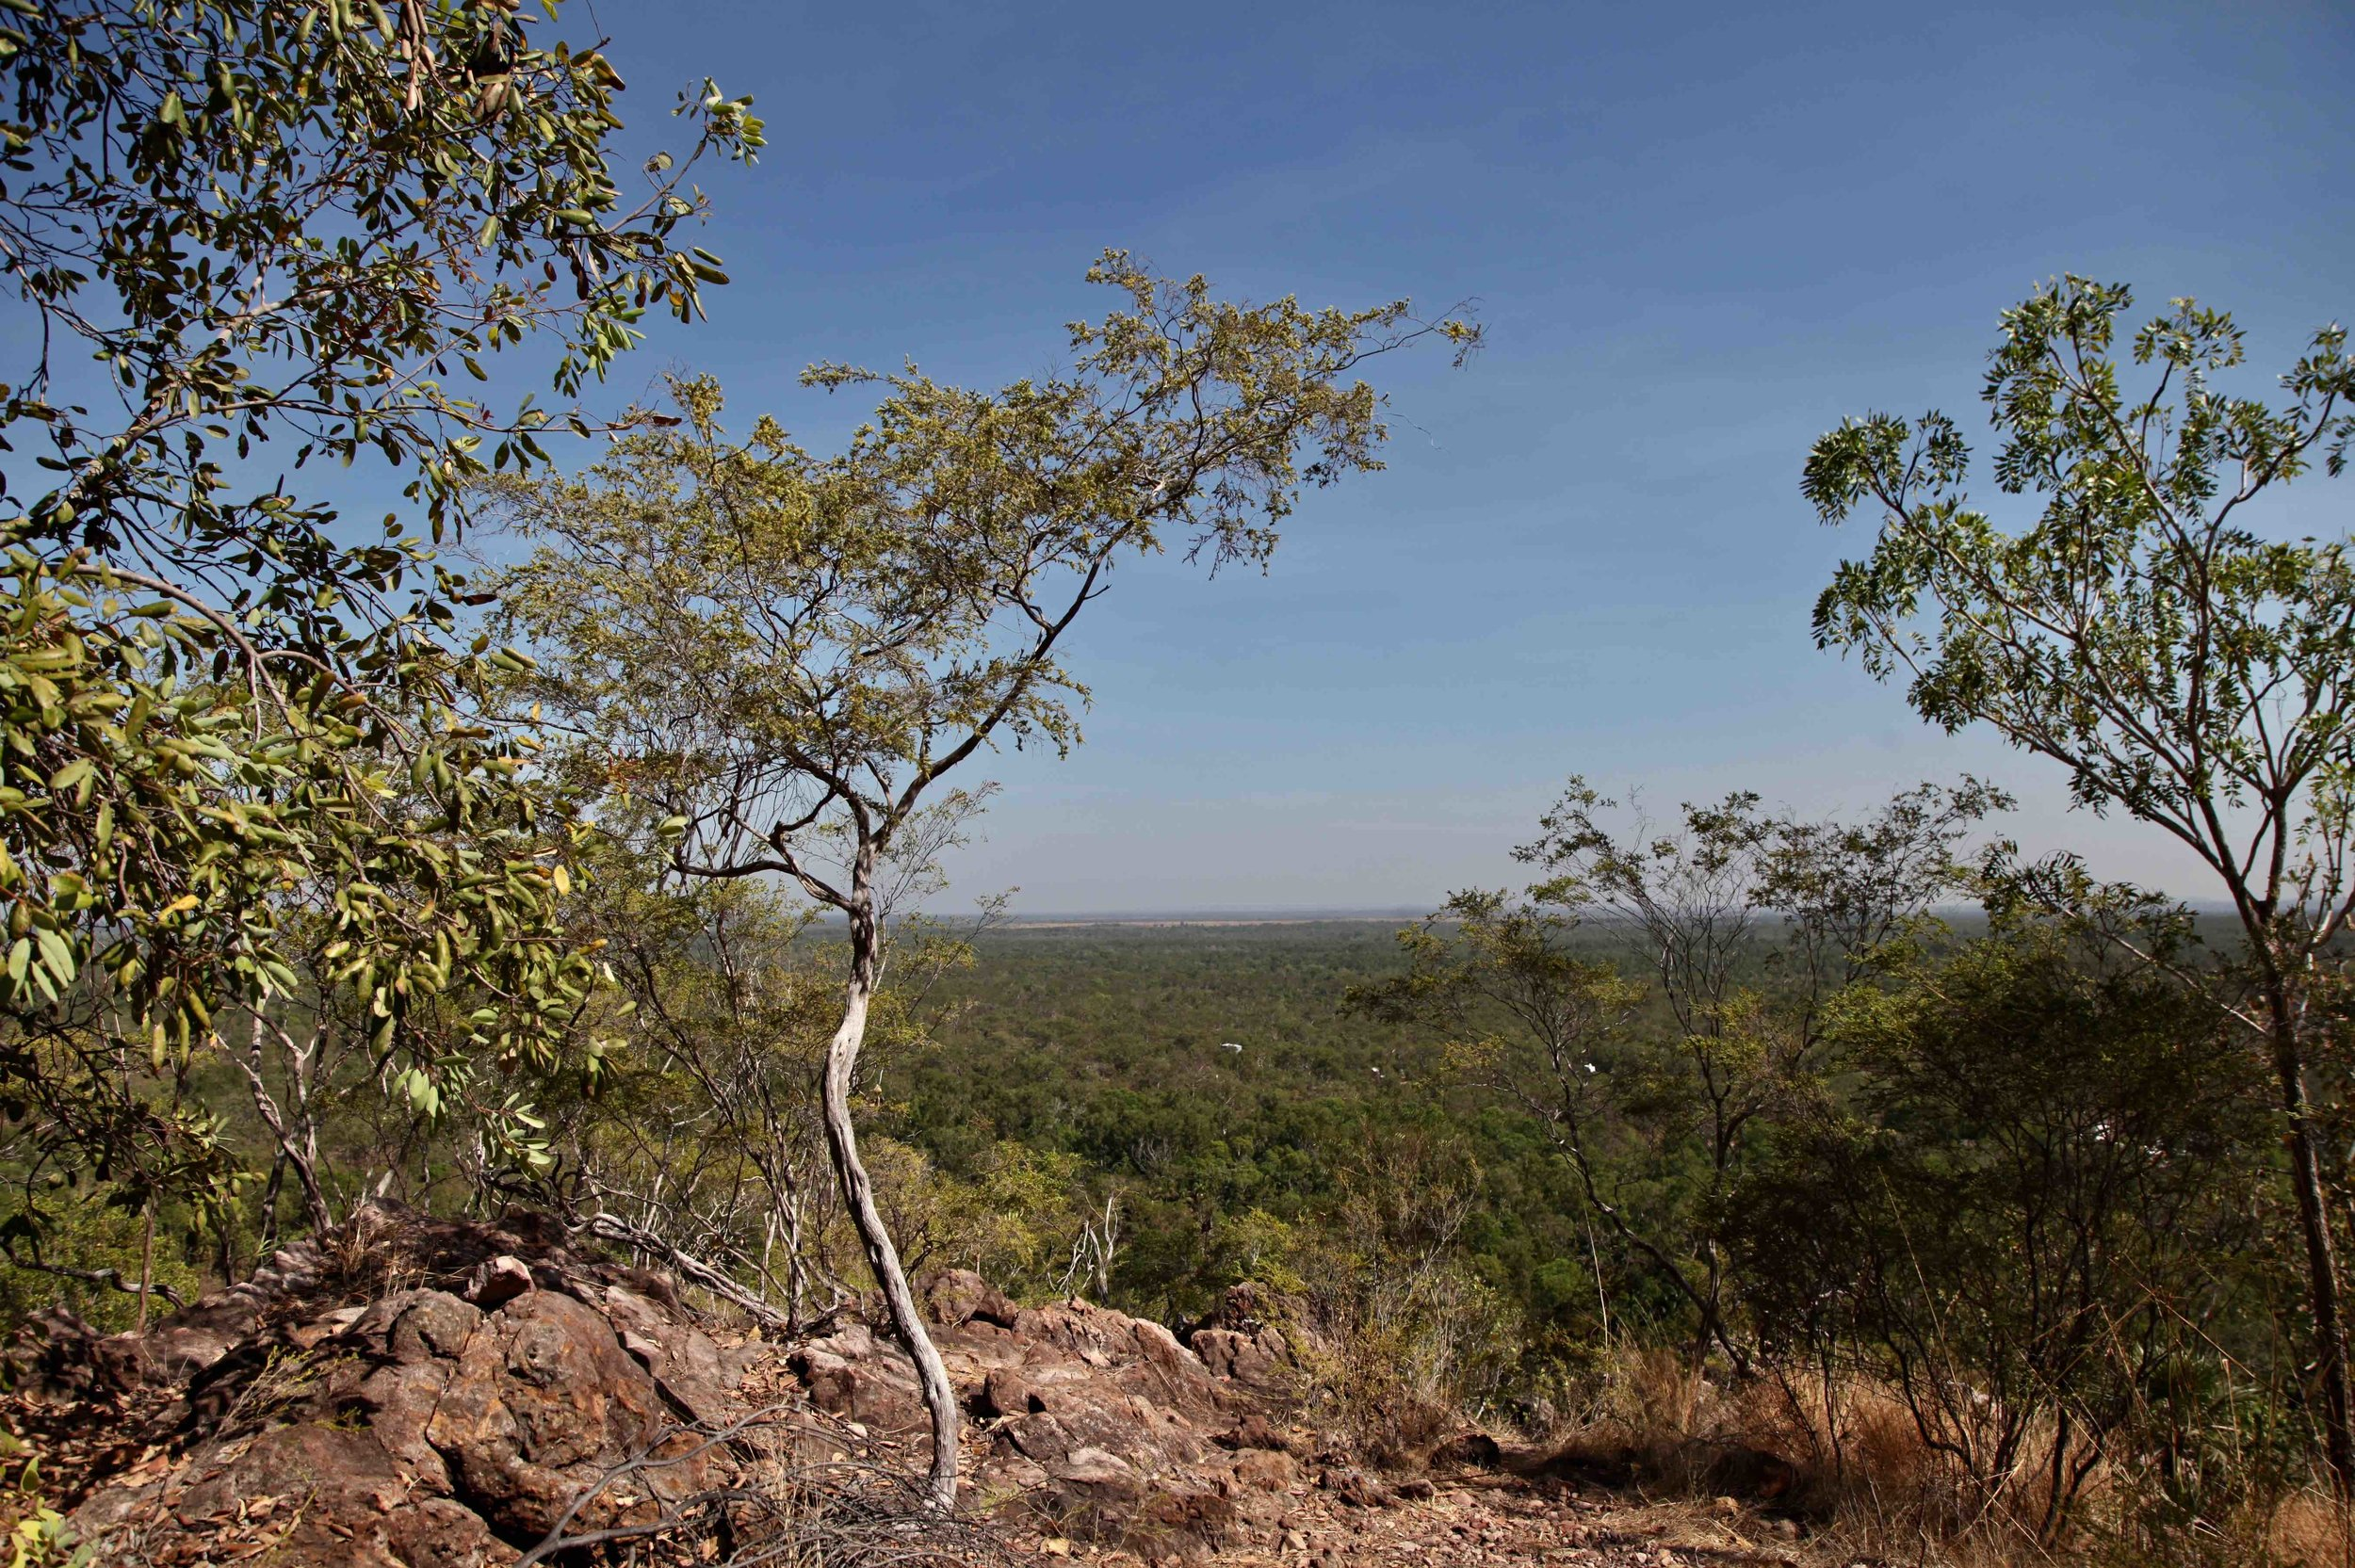 The view across Litchfield National Park from the Wangi loop track.